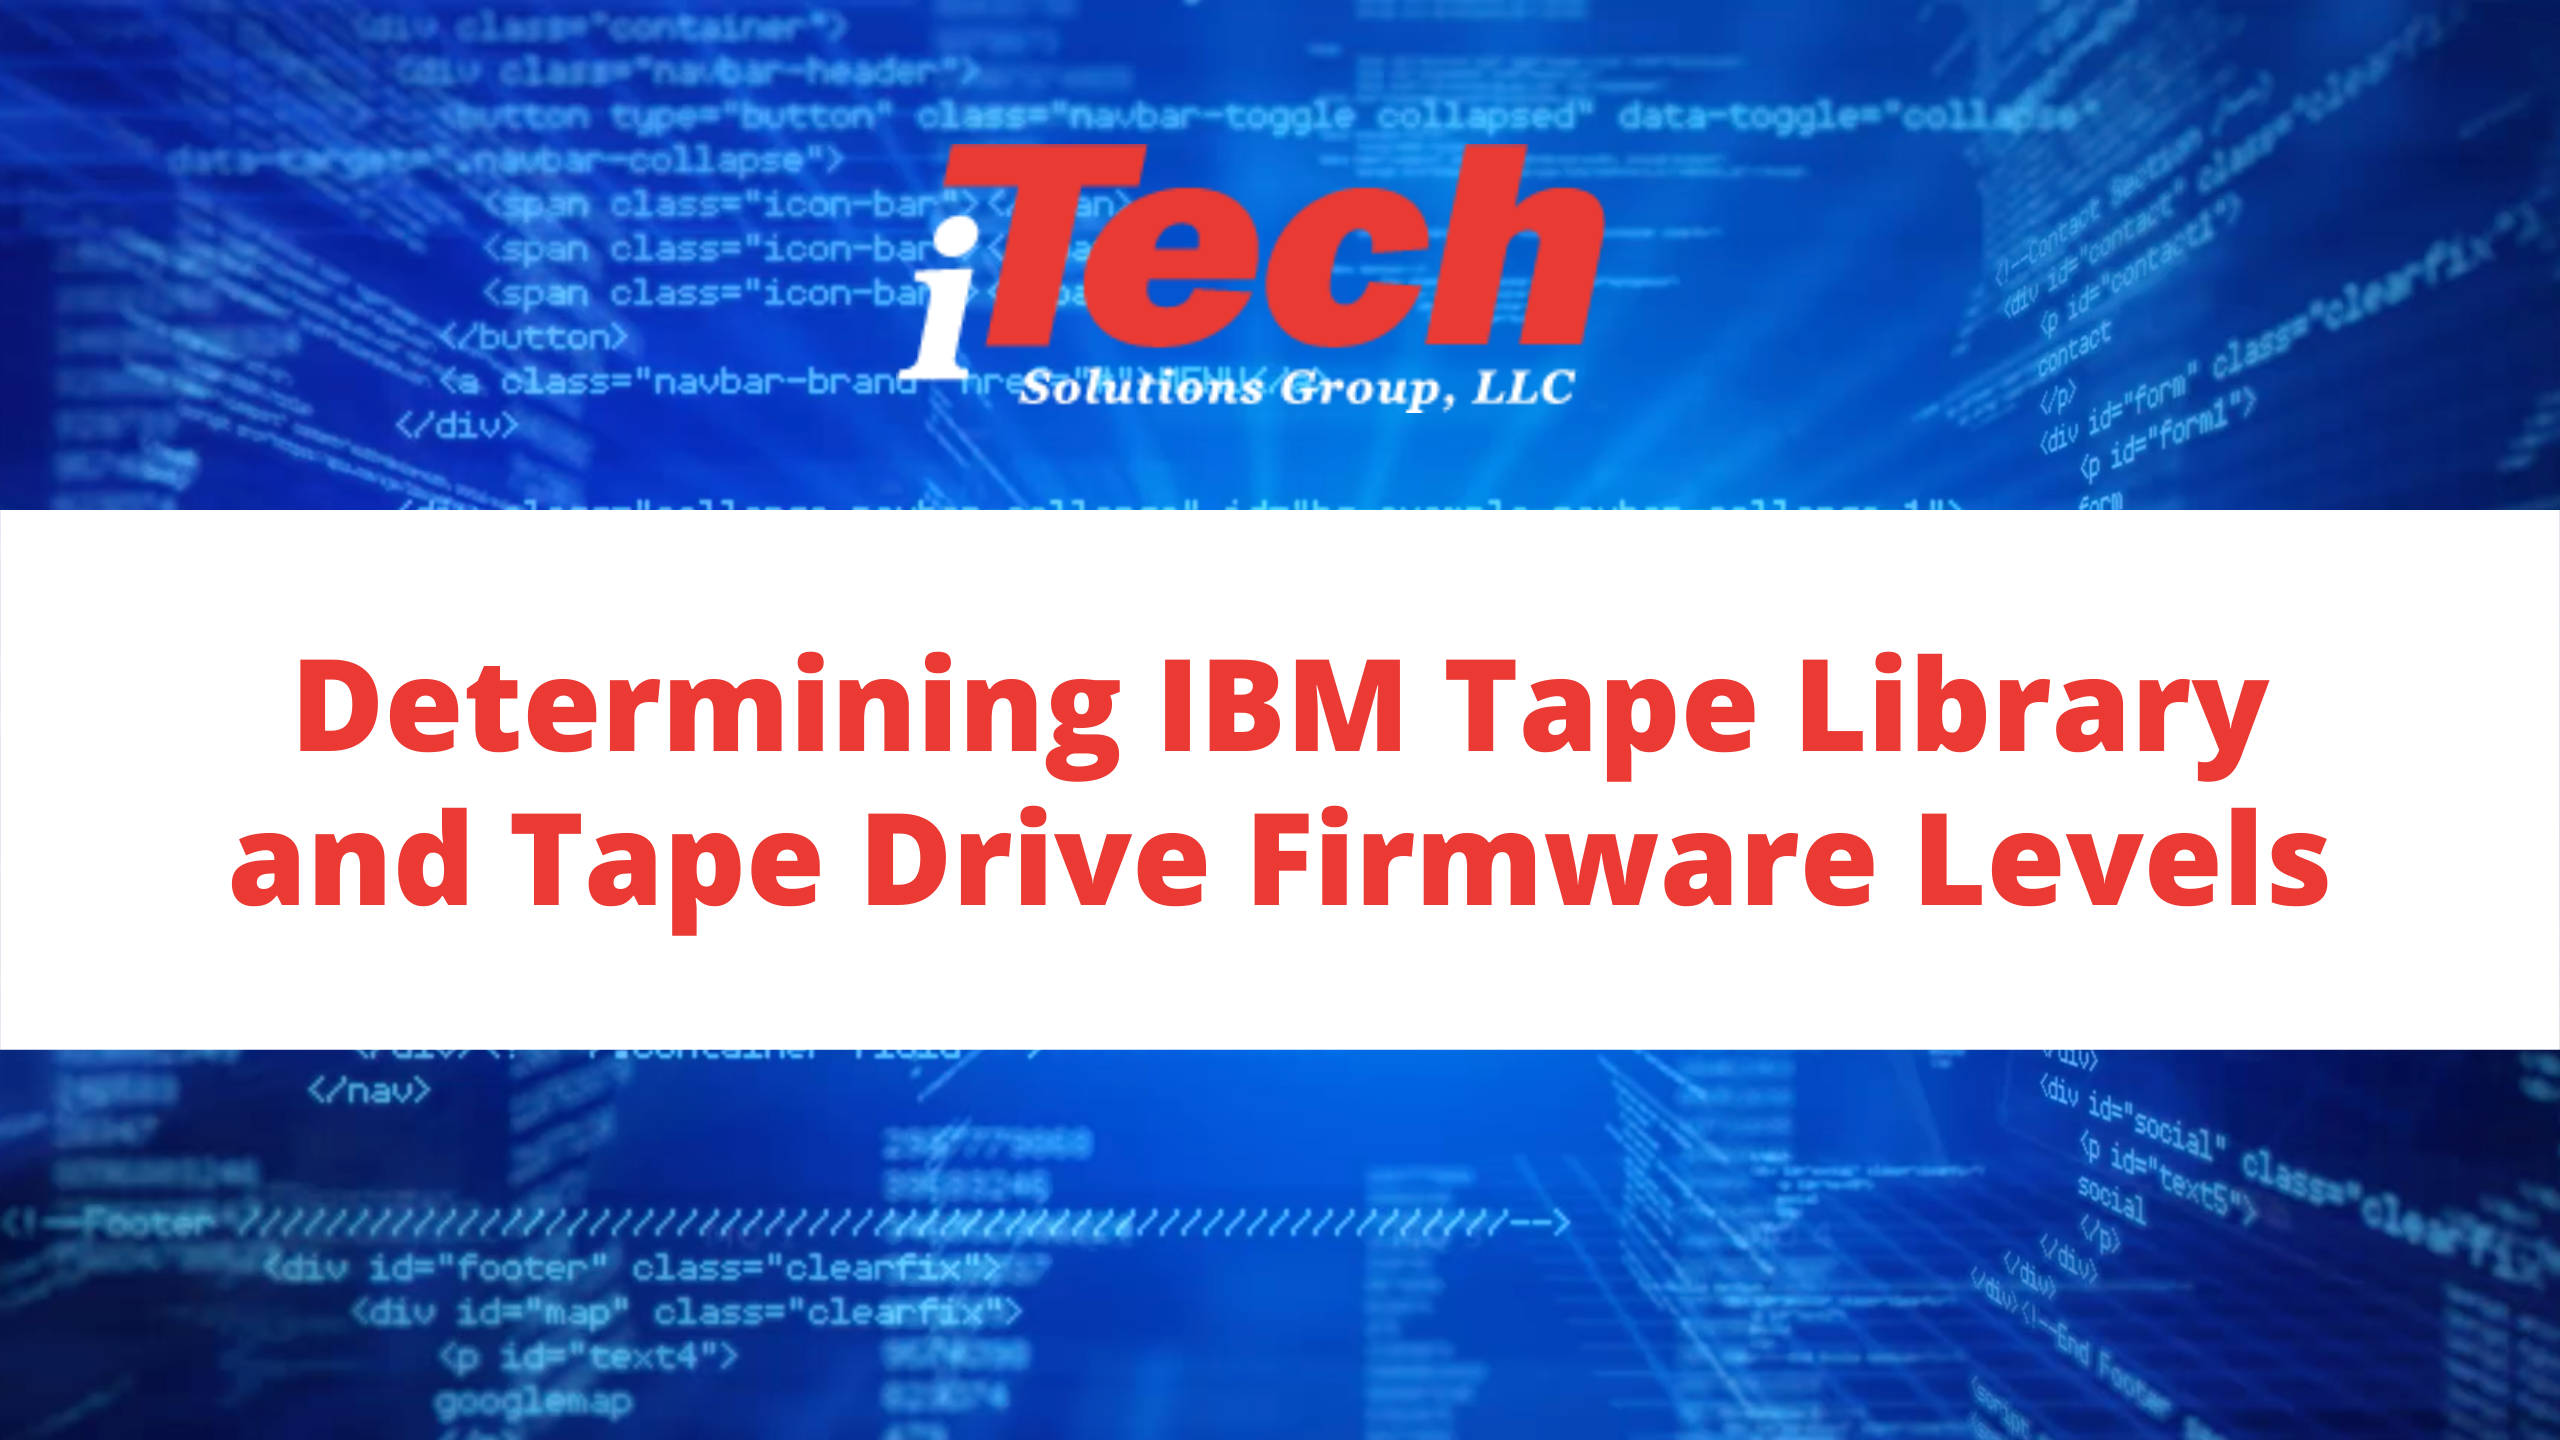 Determining IBM Tape Library and Tape Drive Firmware Levels